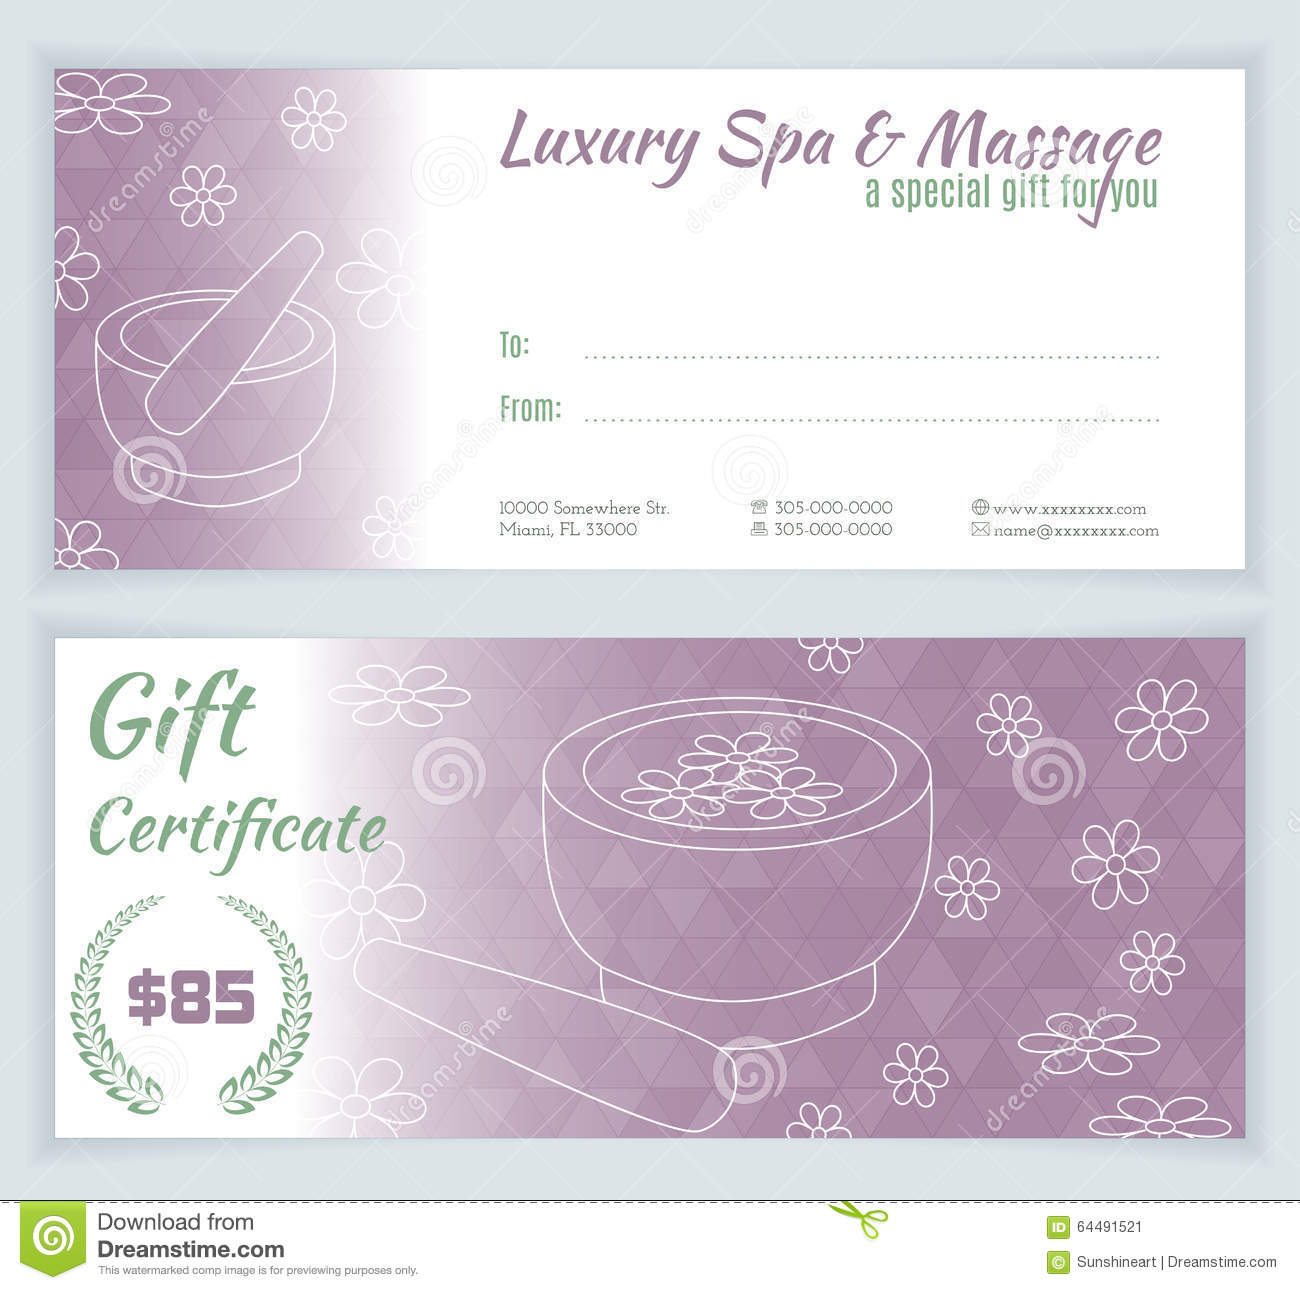 Spa massage gift certificate template stock illustration massage gift certificate template stock illustration illustration of banner pharmacy download comp yelopaper Gallery